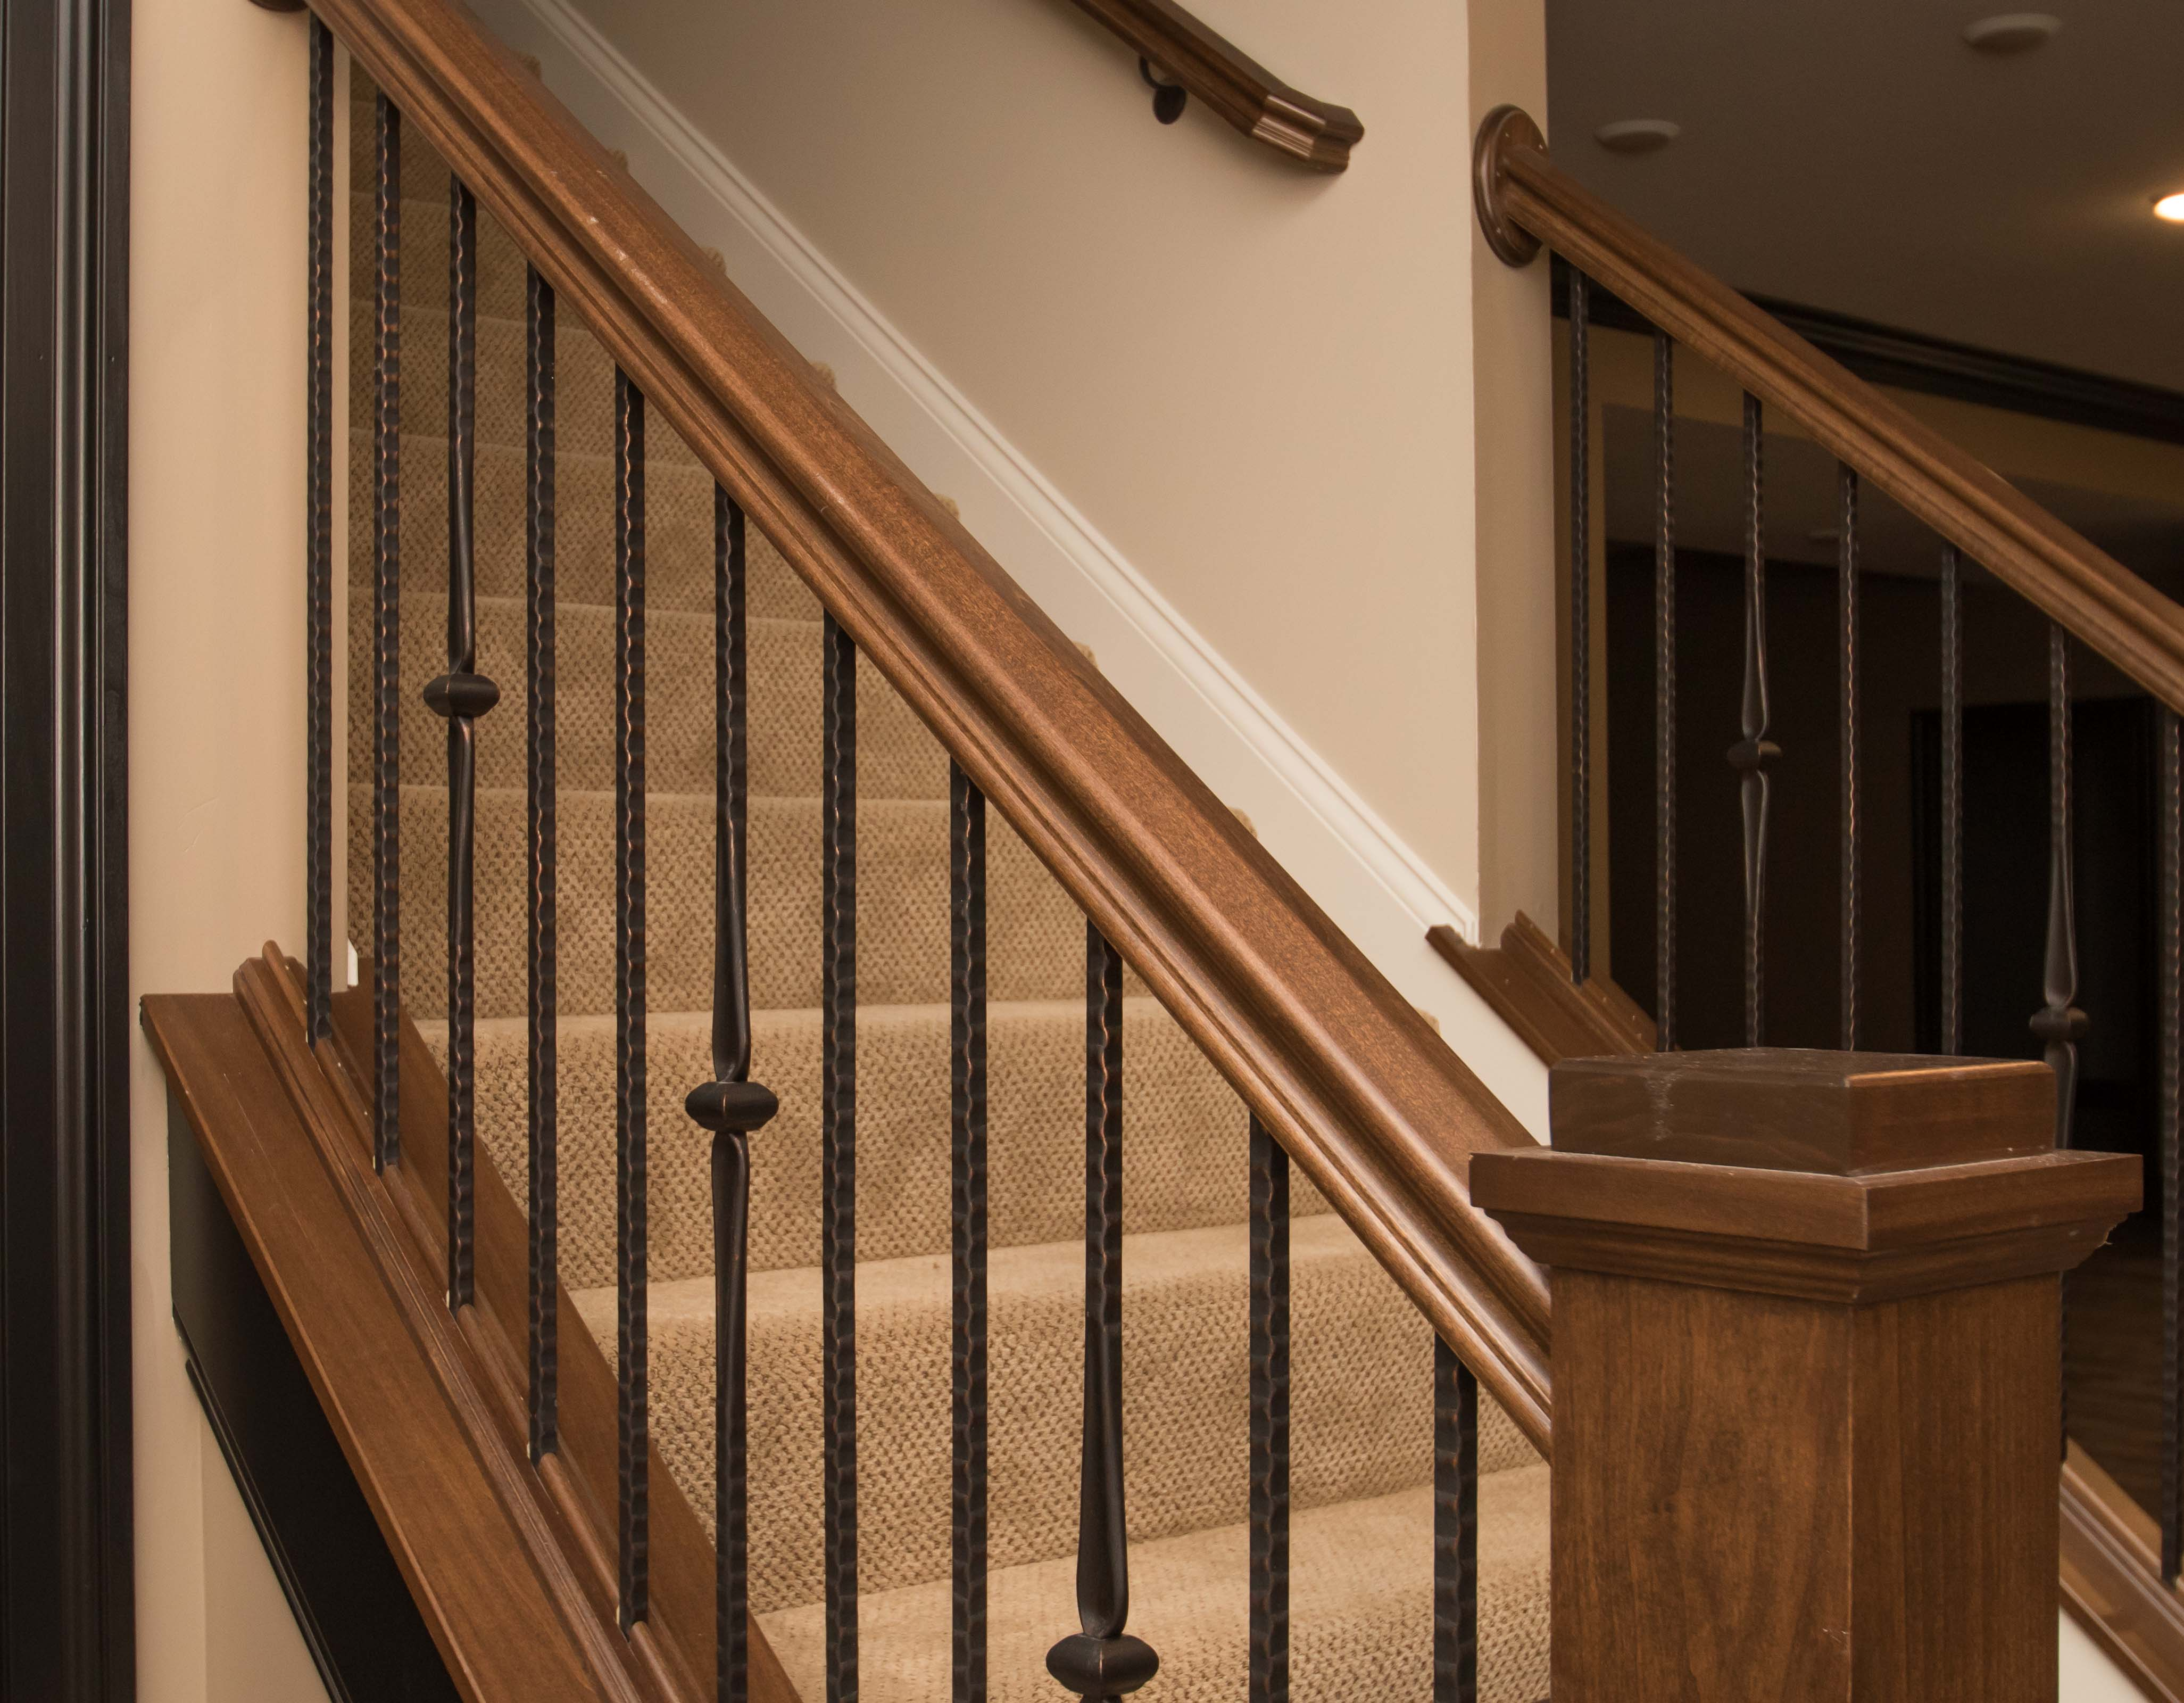 Stained handrail and box newels with camelot iron ballusters #14344, #14344, #14044 pattern